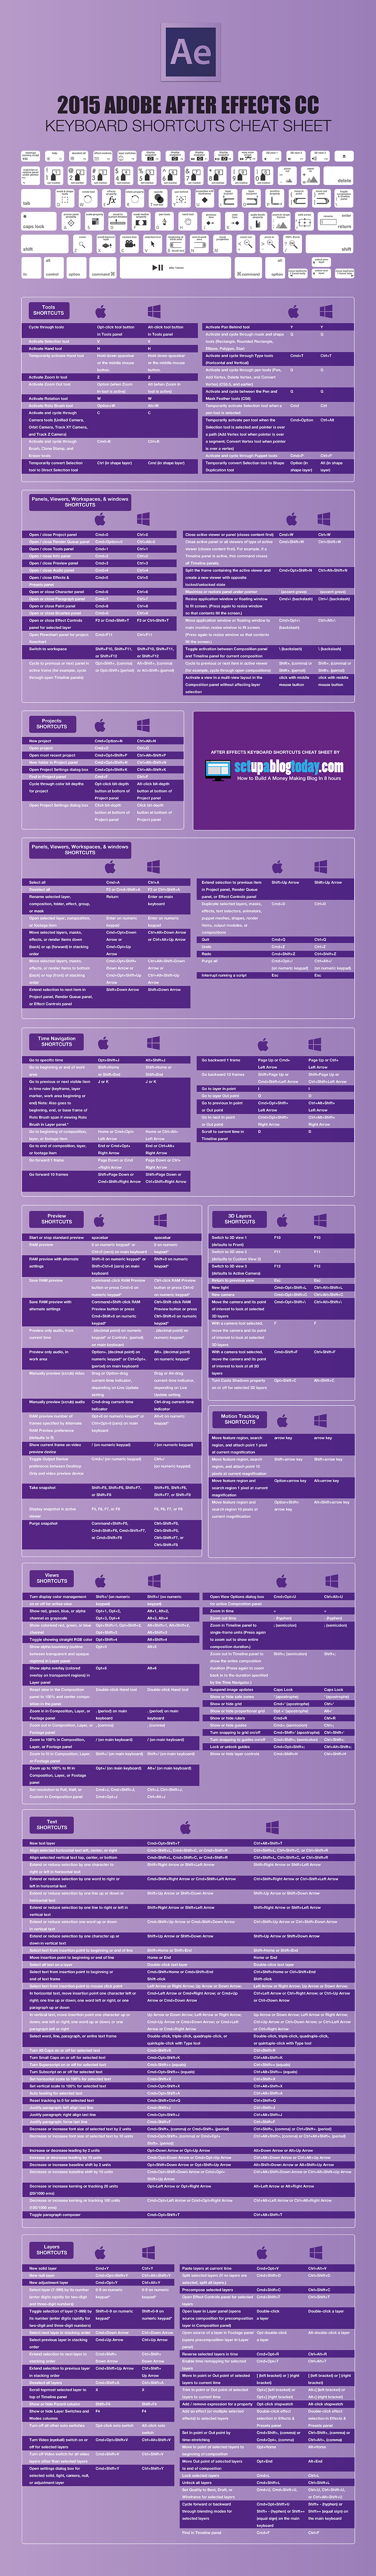 2015 Adobe After Effects Keyboard Shortcuts Cheat Sheet